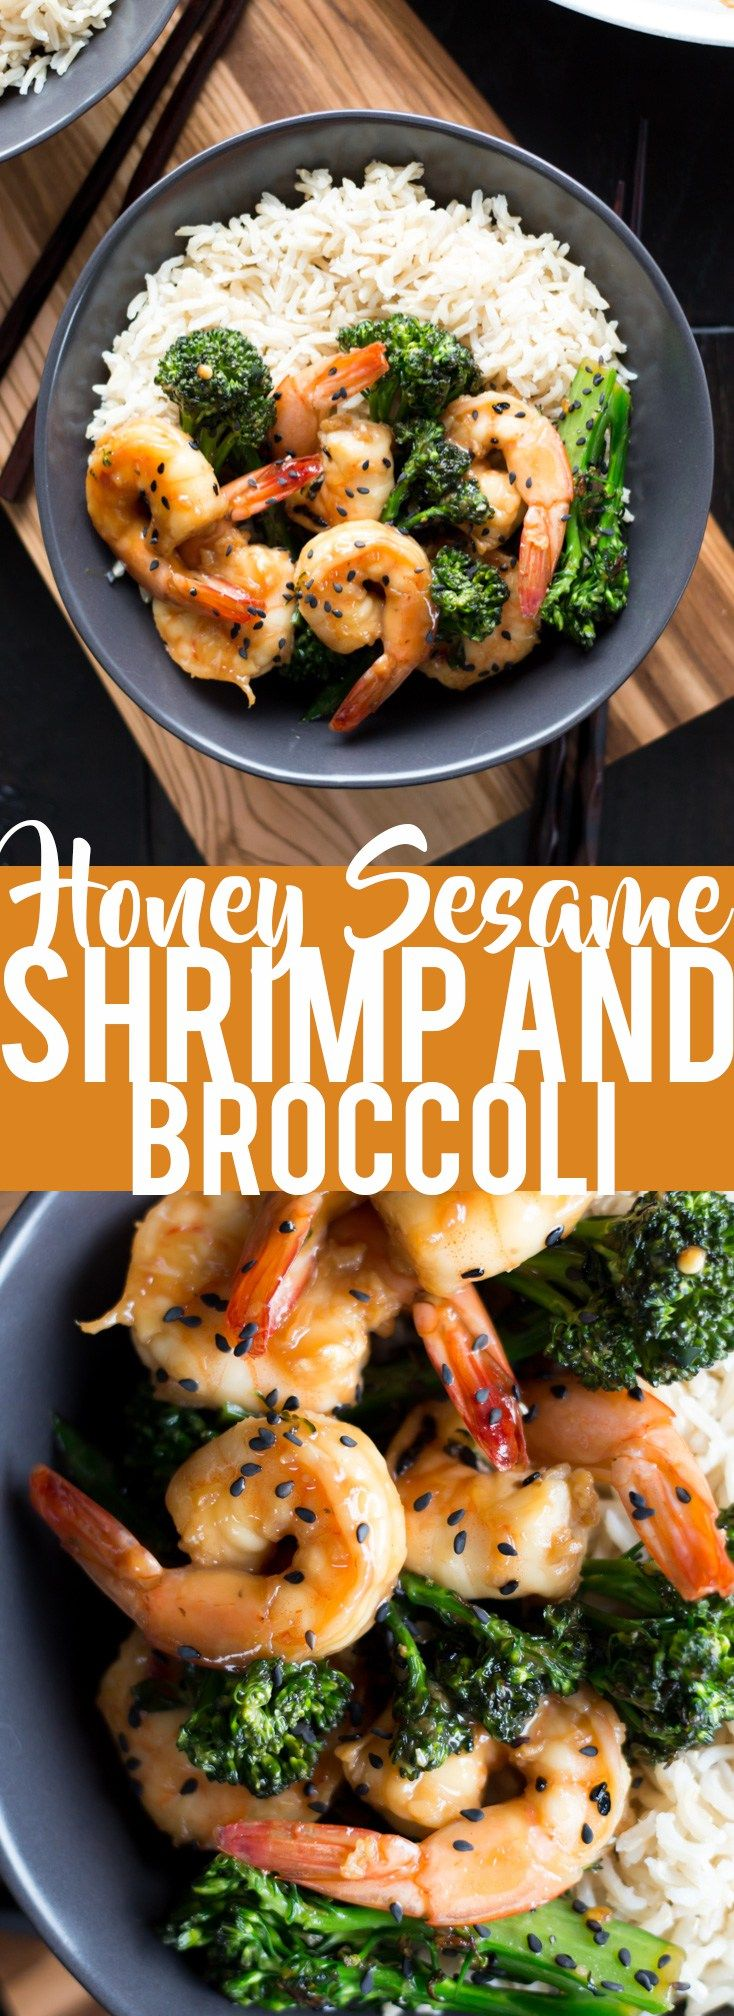 This Honey Sesame Shrimp and Broccoli is a quick and easy dinner. Shrimp and broccoli are quickly sauteed in a sweet and savory sauce that everyone will love! This is great served over rice or noodles, or you can use cauliflower rice or zoodles for a lower carb dinner.